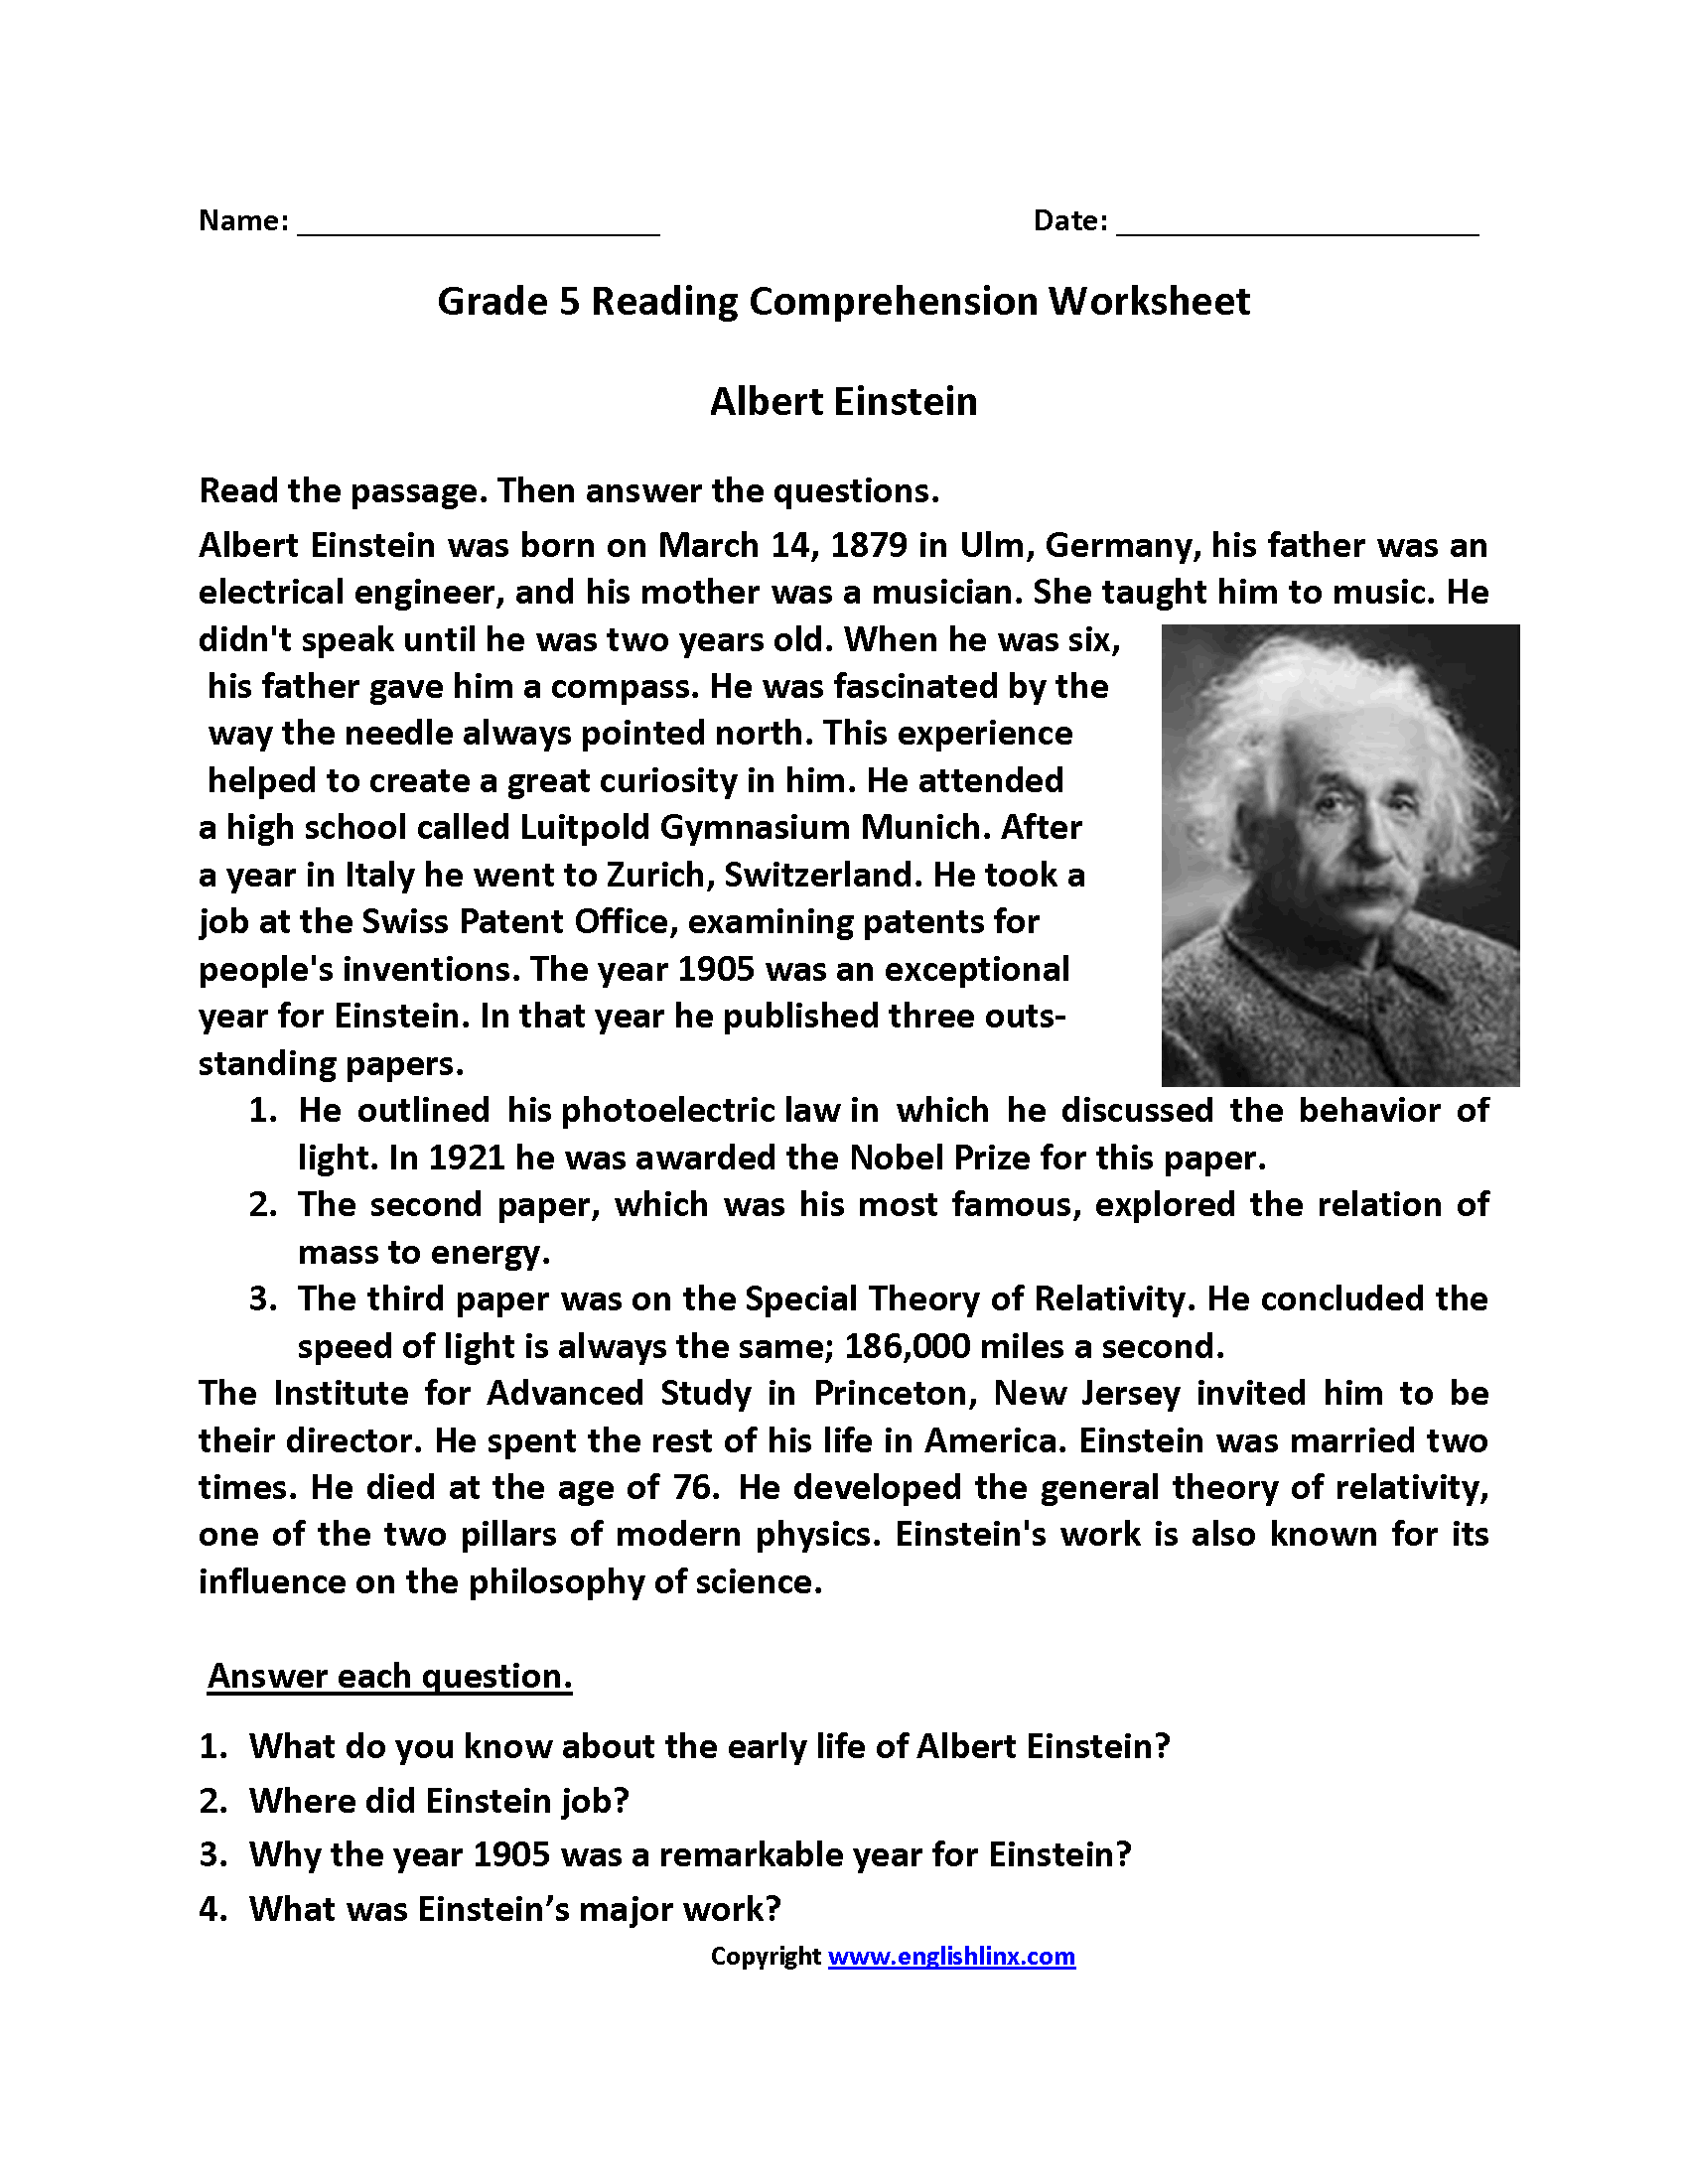 worksheet Fifth Grade Reading Comprehension Worksheets reading worksheets fifth grade worksheets